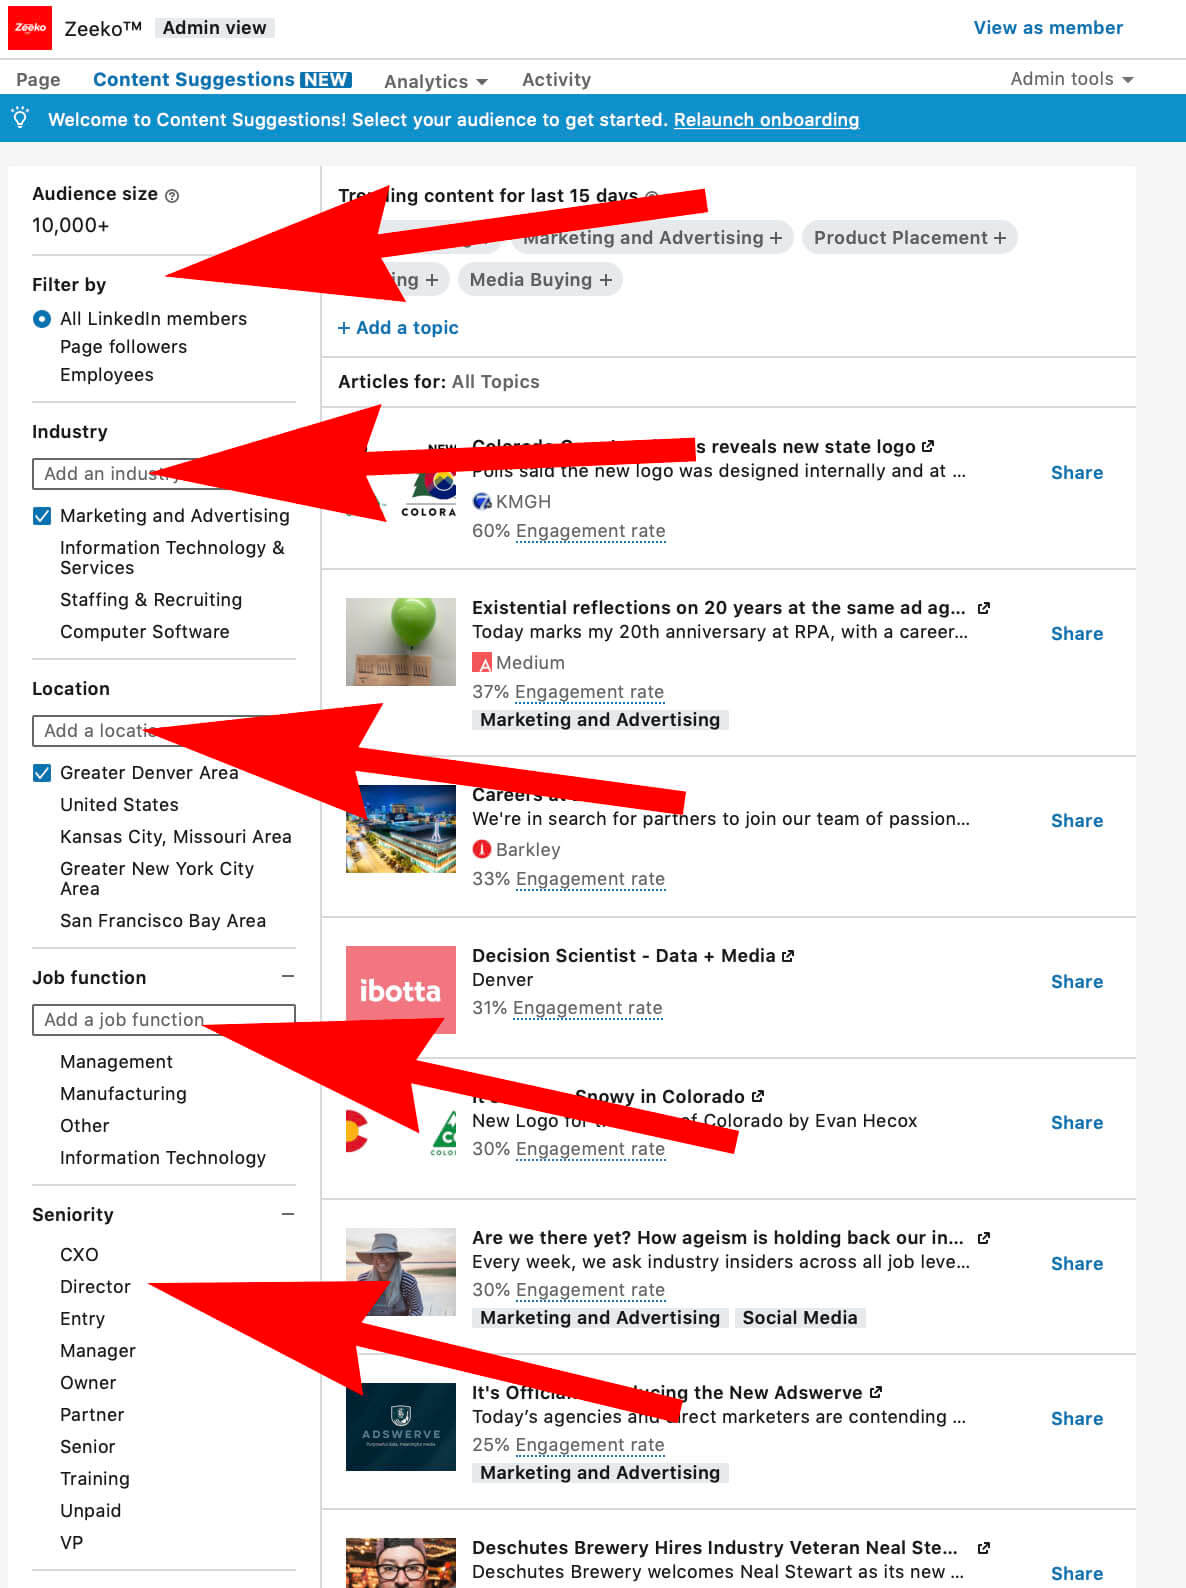 Content filters available on Linkedin pages content suggestions